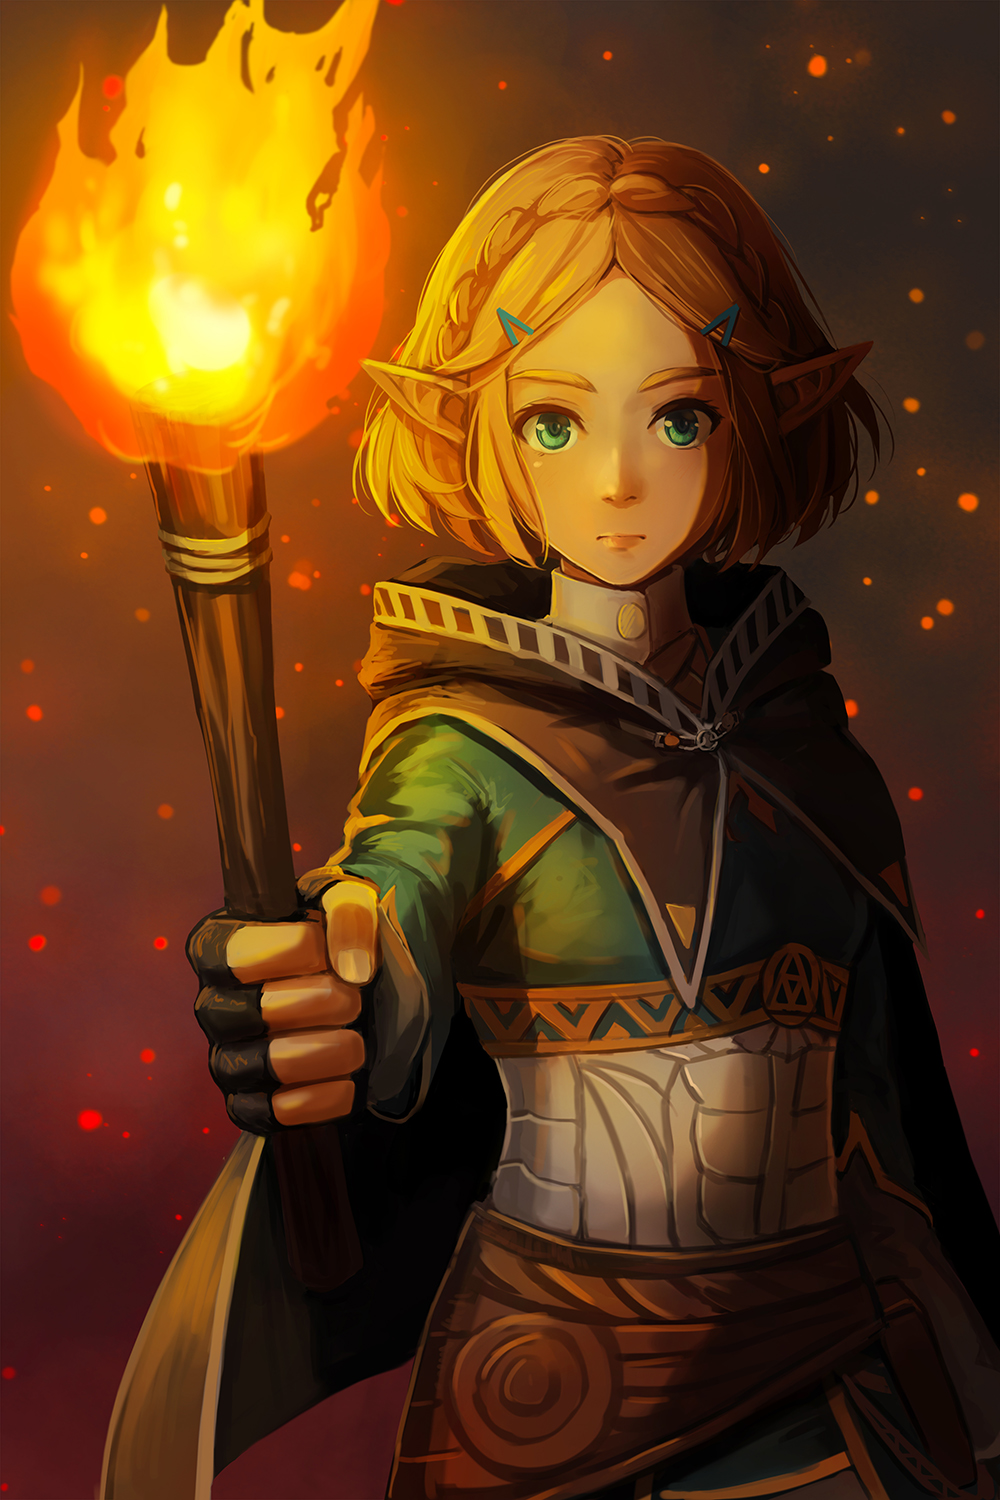 1girl aqua_eyes black_gloves blonde_hair braid cape commentary crown_braid expressionless fingerless_gloves fire flame gloves hair_ornament hairclip highres holding holding_torch hood hood_down long_sleeves looking_at_viewer pointy_ears princess_zelda redpoke short_hair solo the_legend_of_zelda the_legend_of_zelda:_breath_of_the_wild the_legend_of_zelda:_breath_of_the_wild_2 torch